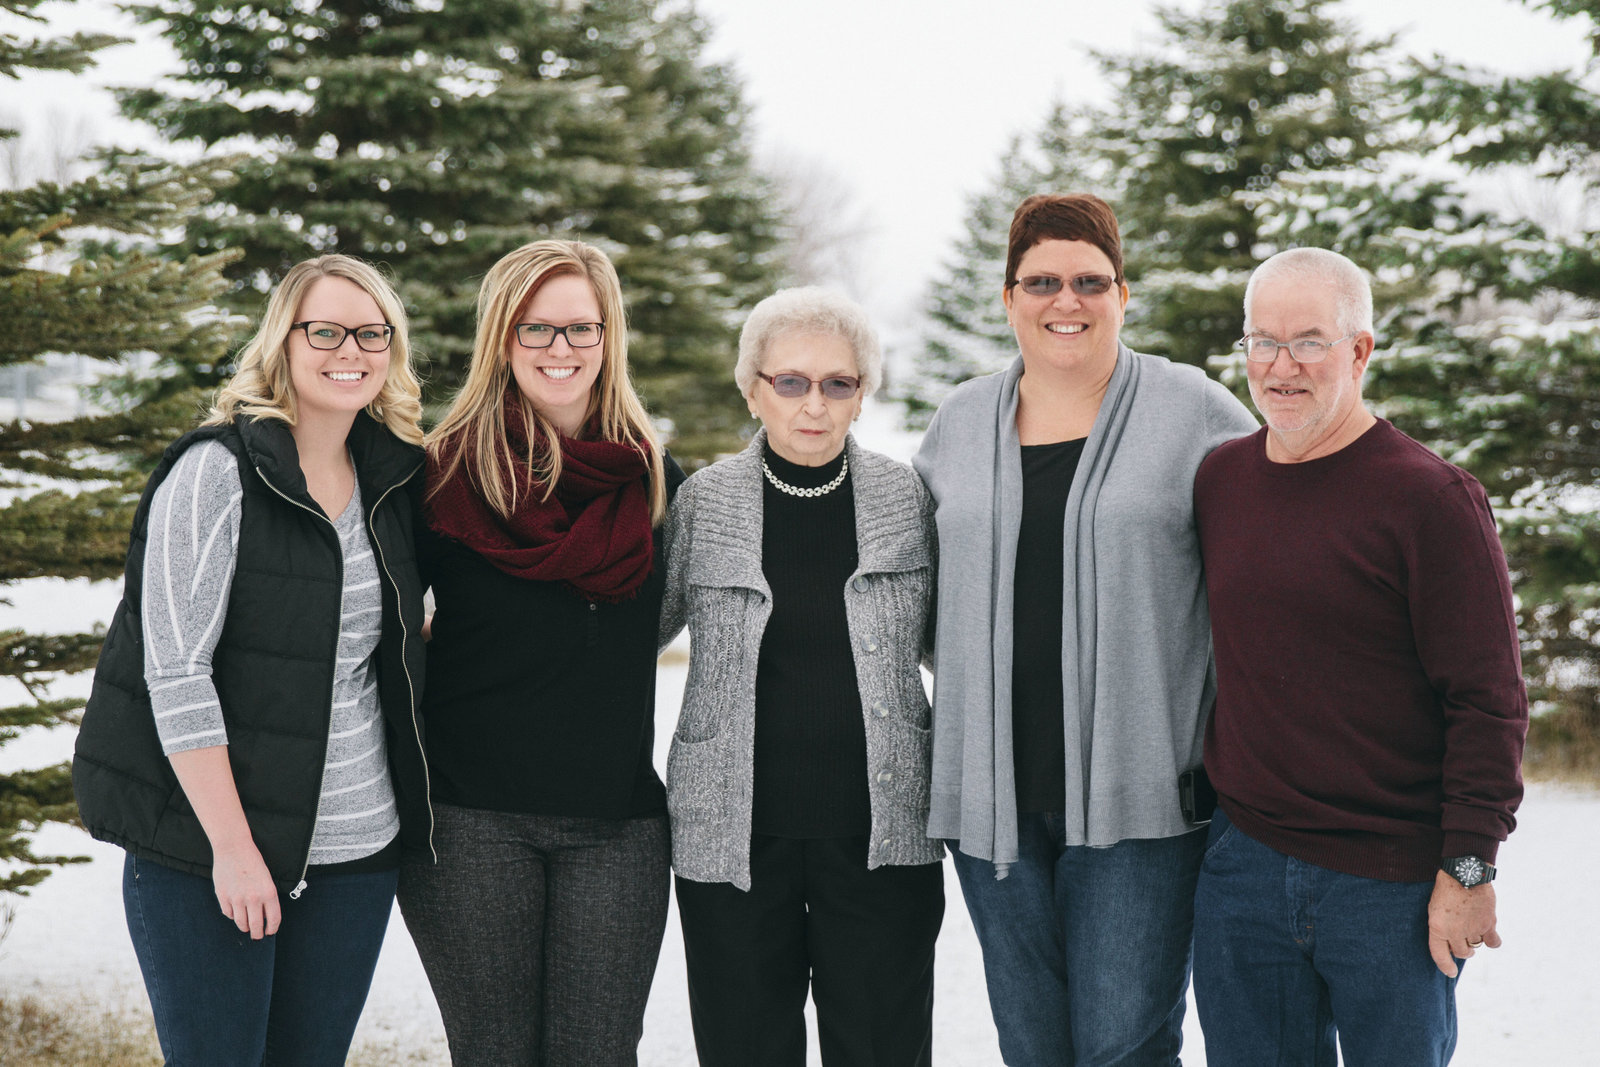 family | elizabeth street photography | winter | evergreen trees | Steele, ND